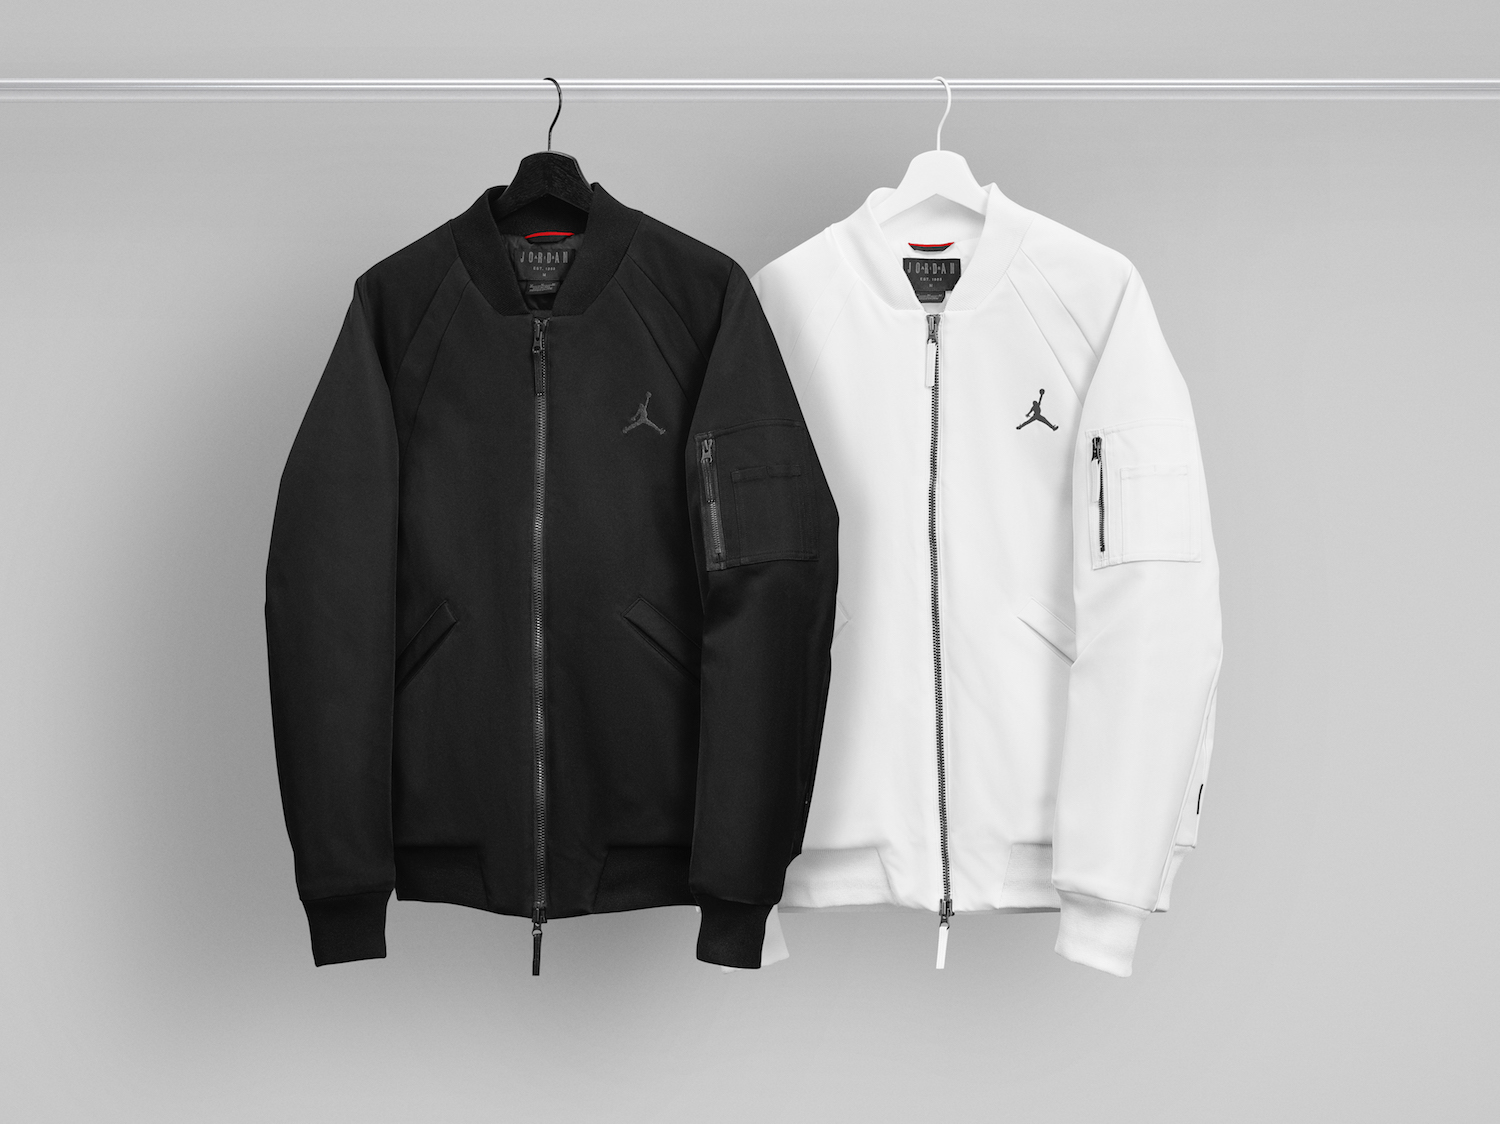 gloria Lógico Oceanía  jordan brand fall 17 apparel collection jordan wings MA-I jacket 1 -  WearTesters